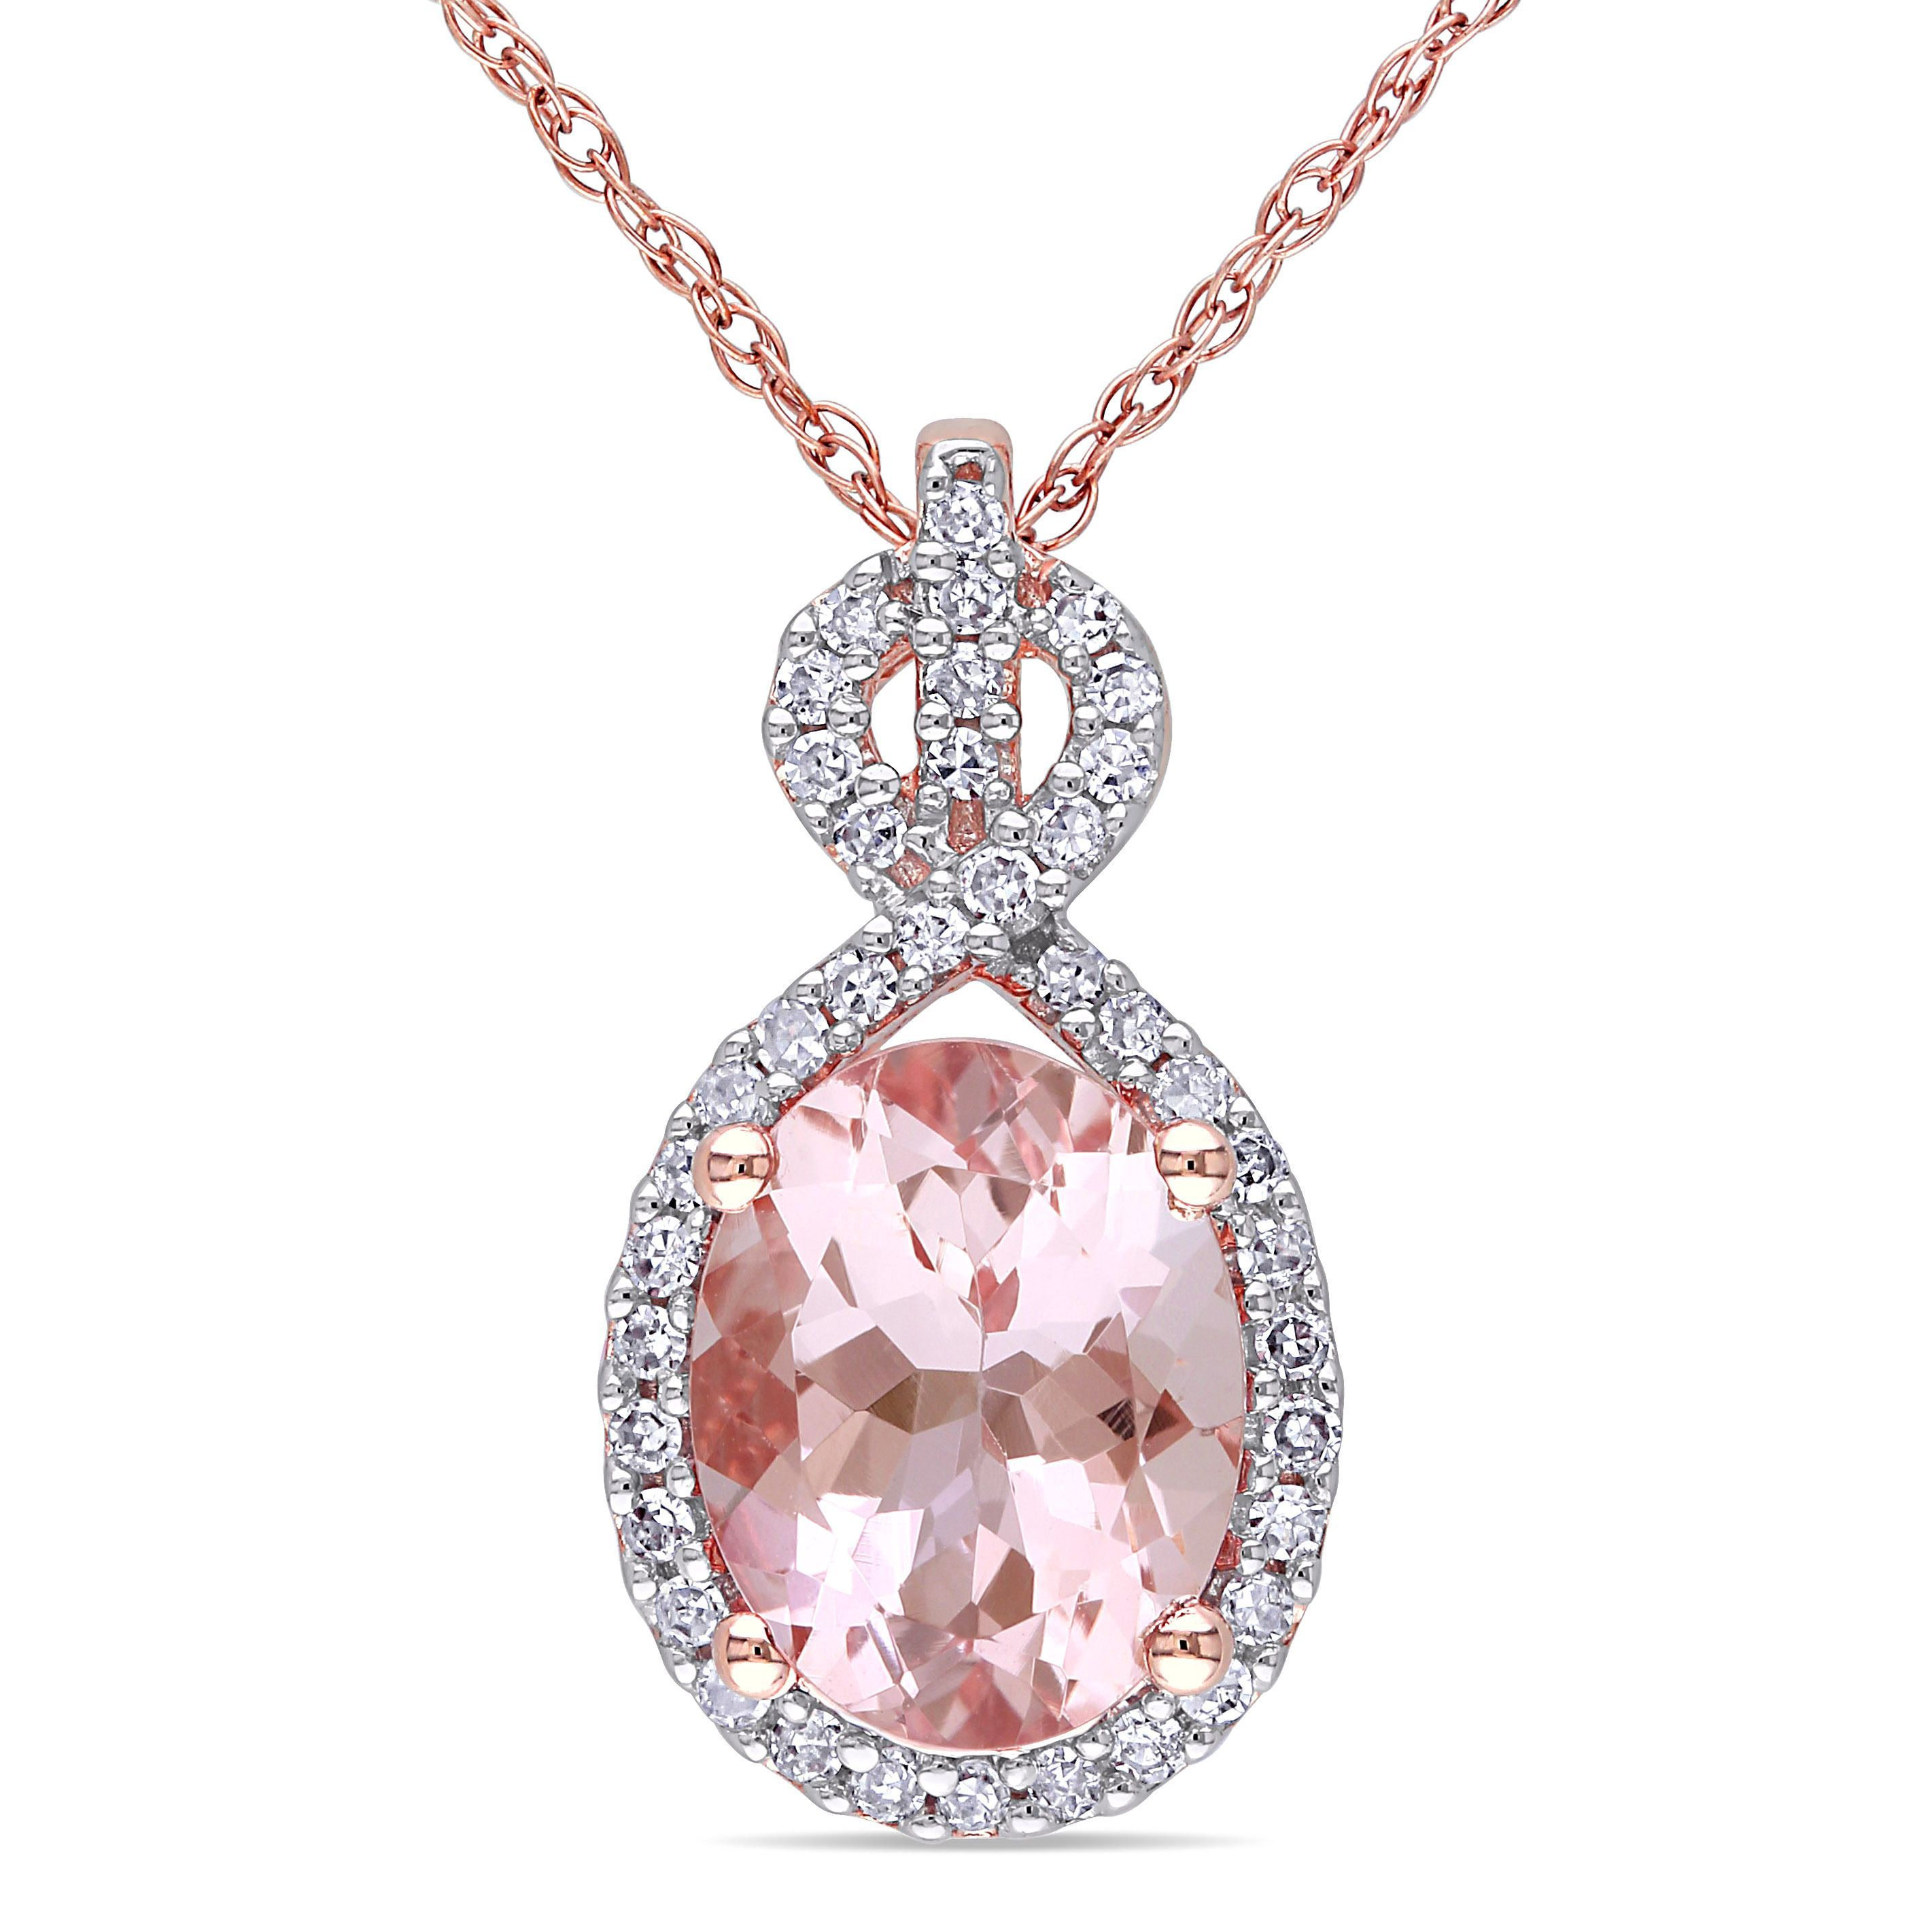 pendant collections necklace shape products pear dsc sterling silver rose copy with shop gold morganite